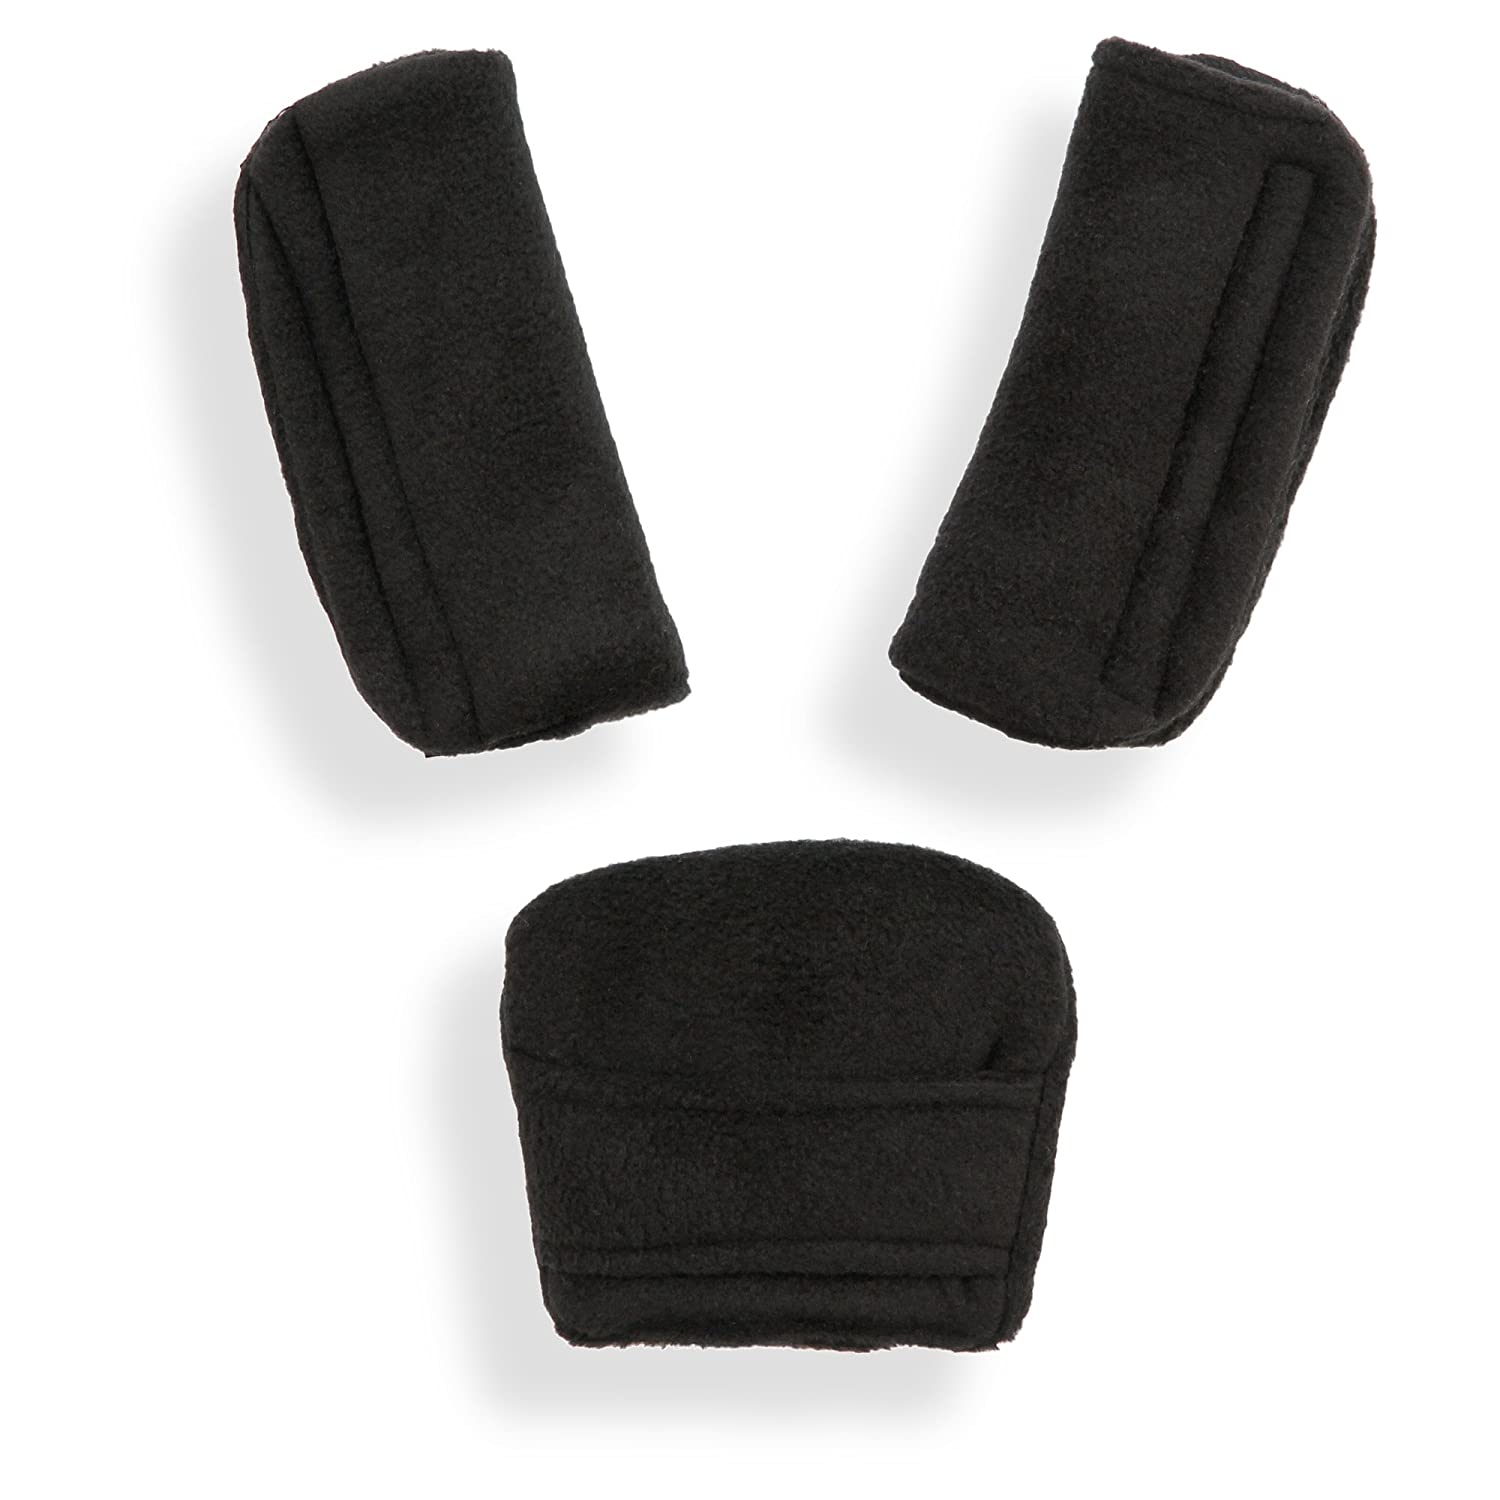 BELTS PADS SHOULDER STRAP & CROTCH cover UNIVERSAL Fits most buggy, stroller, car seat (Soft black) olobaby